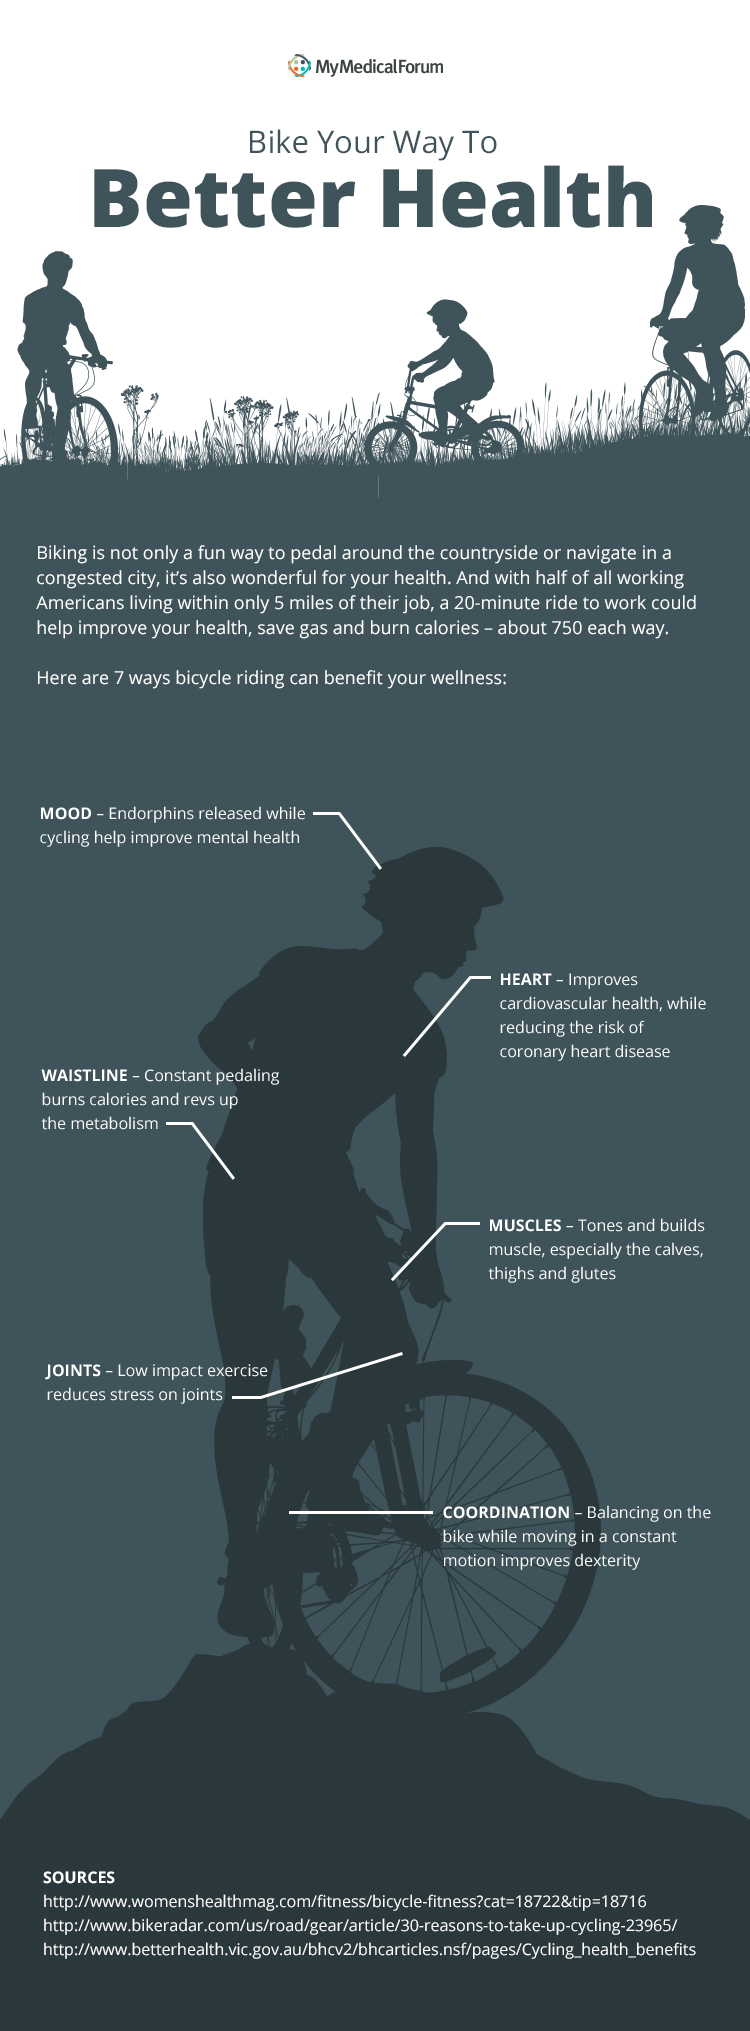 Bike-your-way-to-better-health-infographic